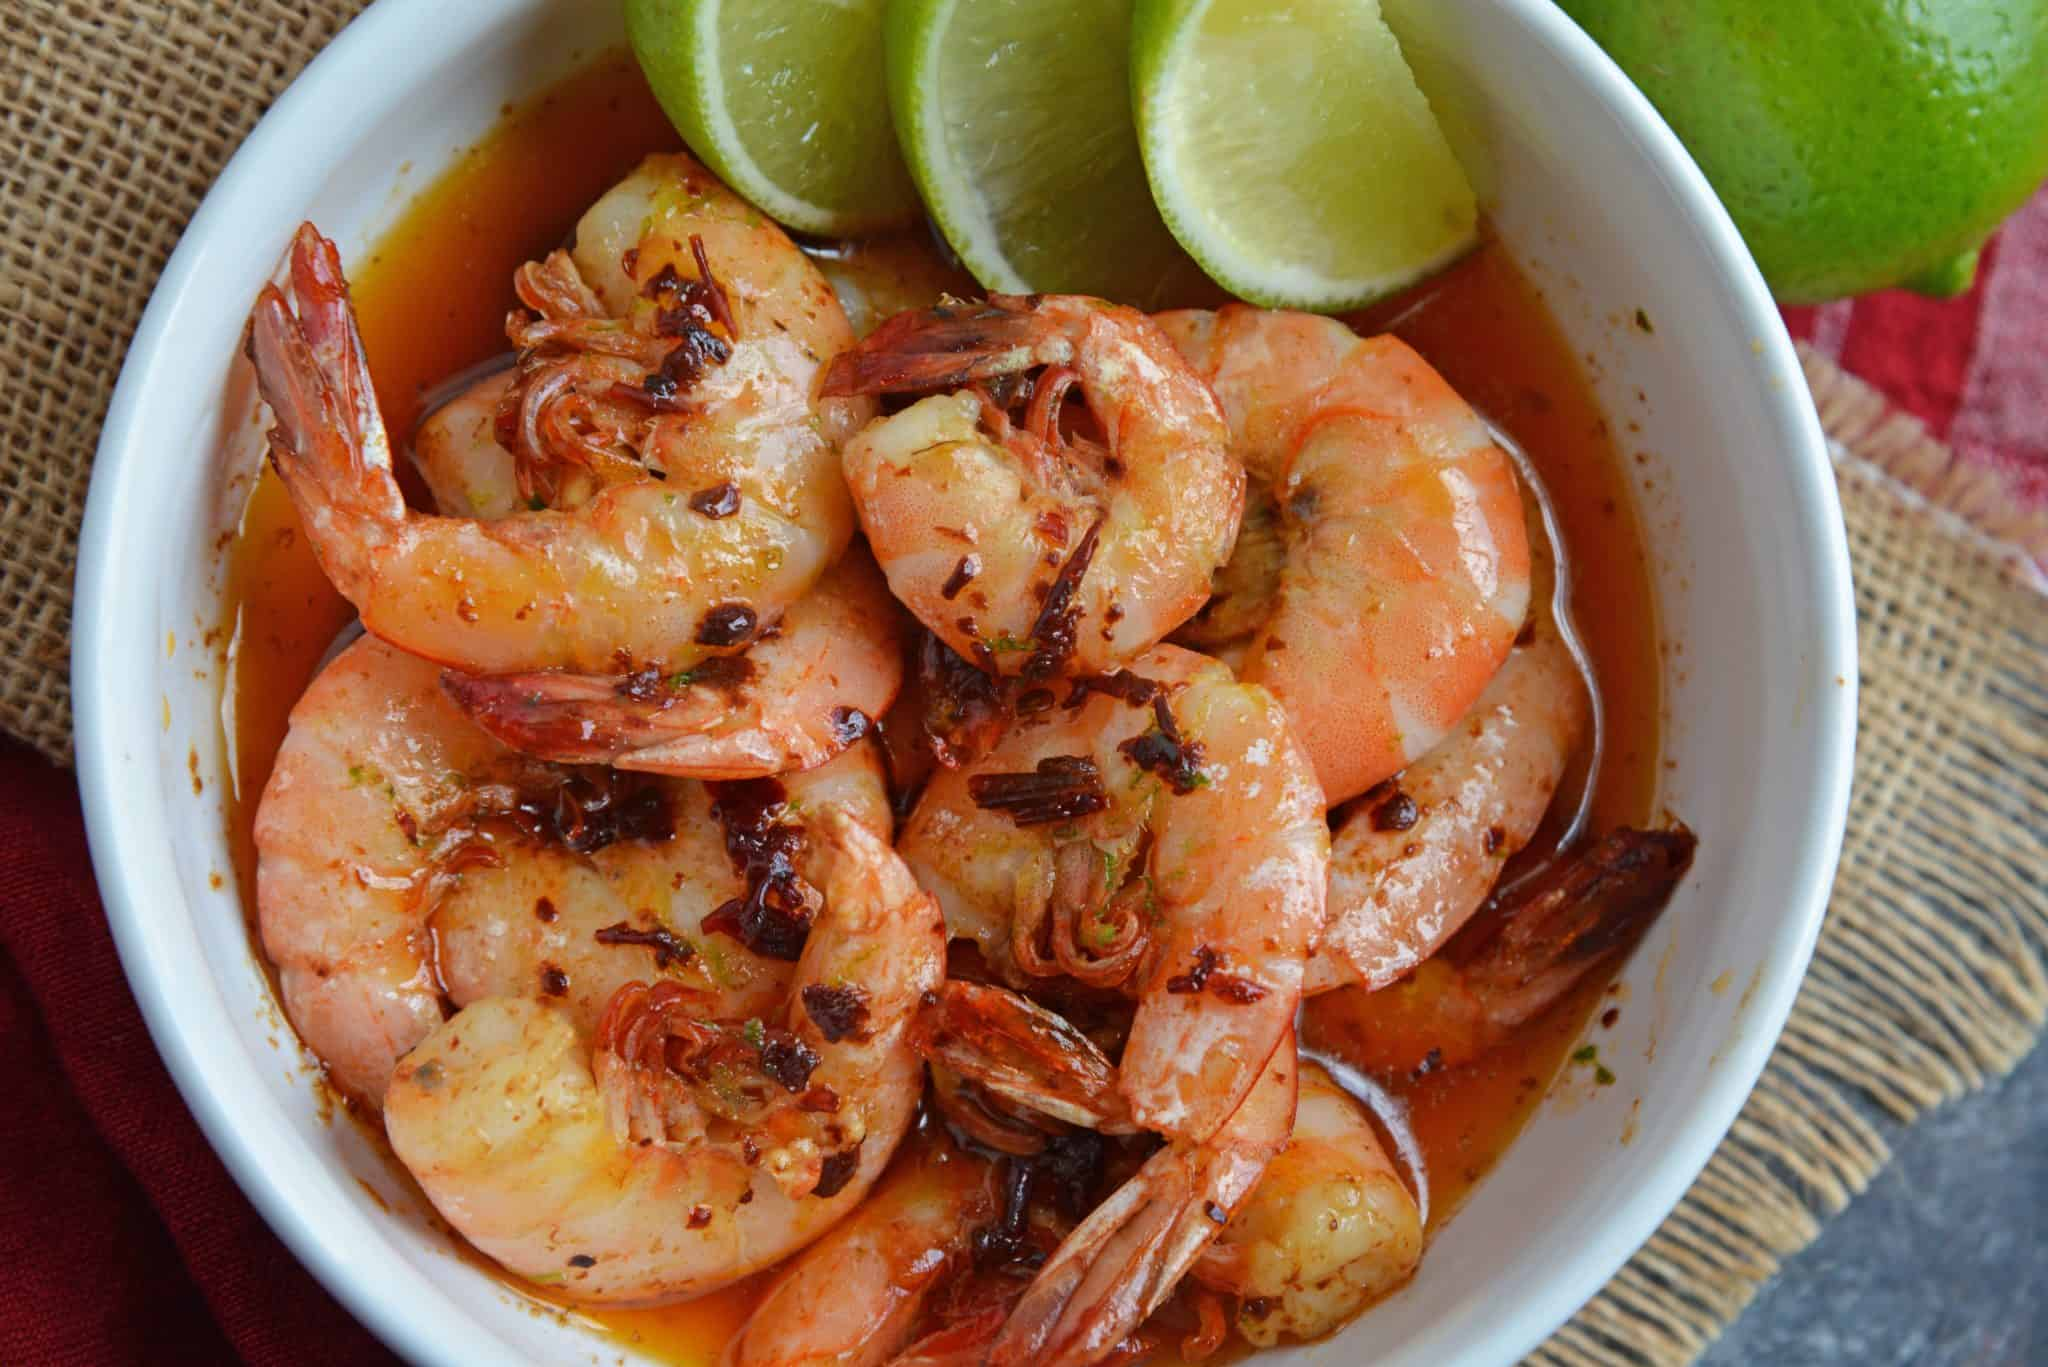 Chipotle Lime Buttered Shrimp is a delicious, spicy shrimp recipe! The chipotle peppers in adobe sauce with lime juice, make this recipe the perfect appetizer! #spicyshrimprecipe #sauteedshrimp www.savoryexperiments.com